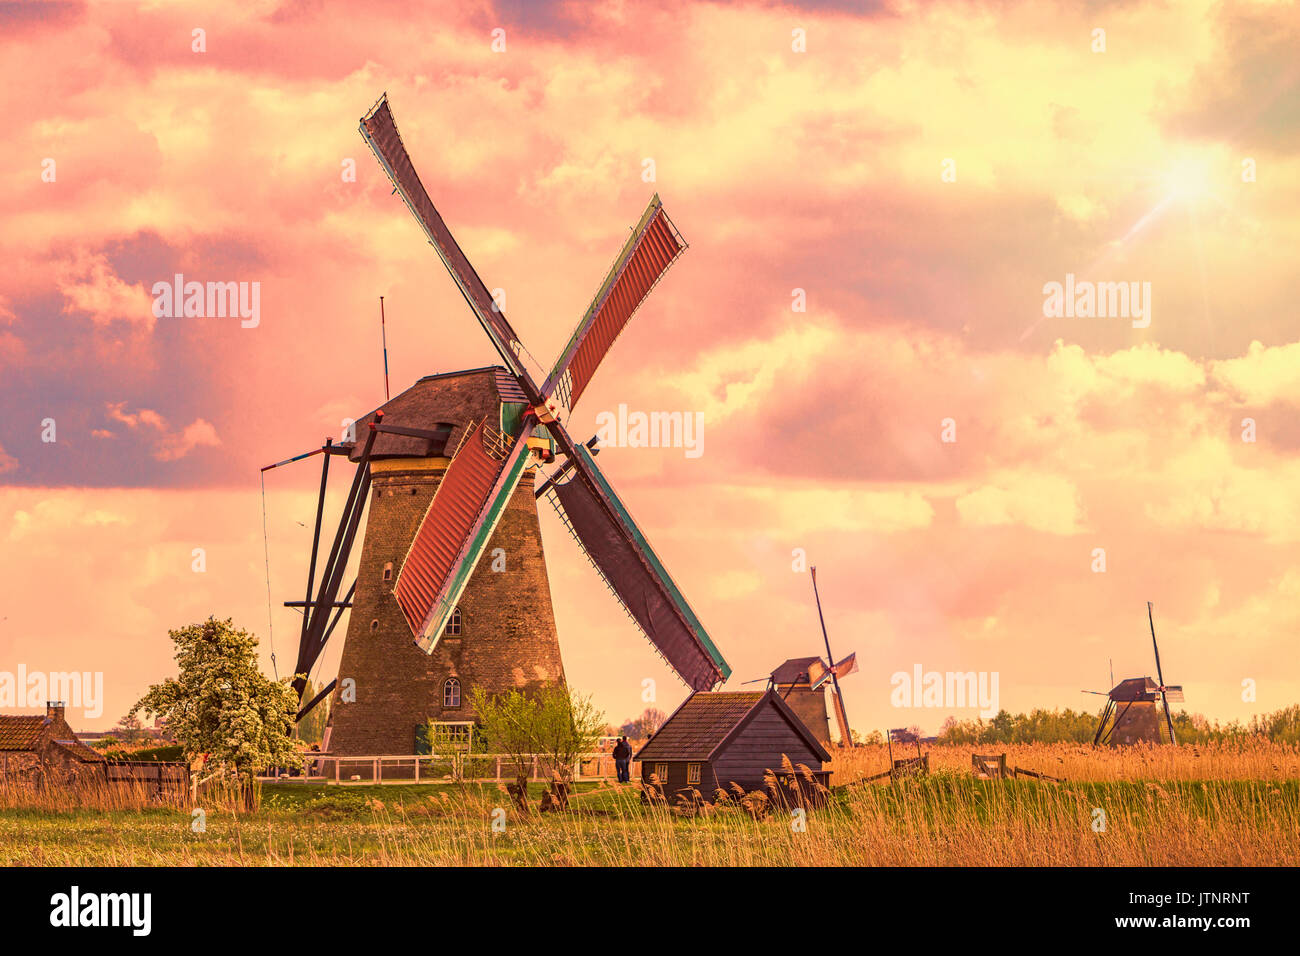 Kinderdijk, Listed in the UNESCO world heritage site located at Alblasserdam, nearby Rotterdam, Netherlands - Stock Image